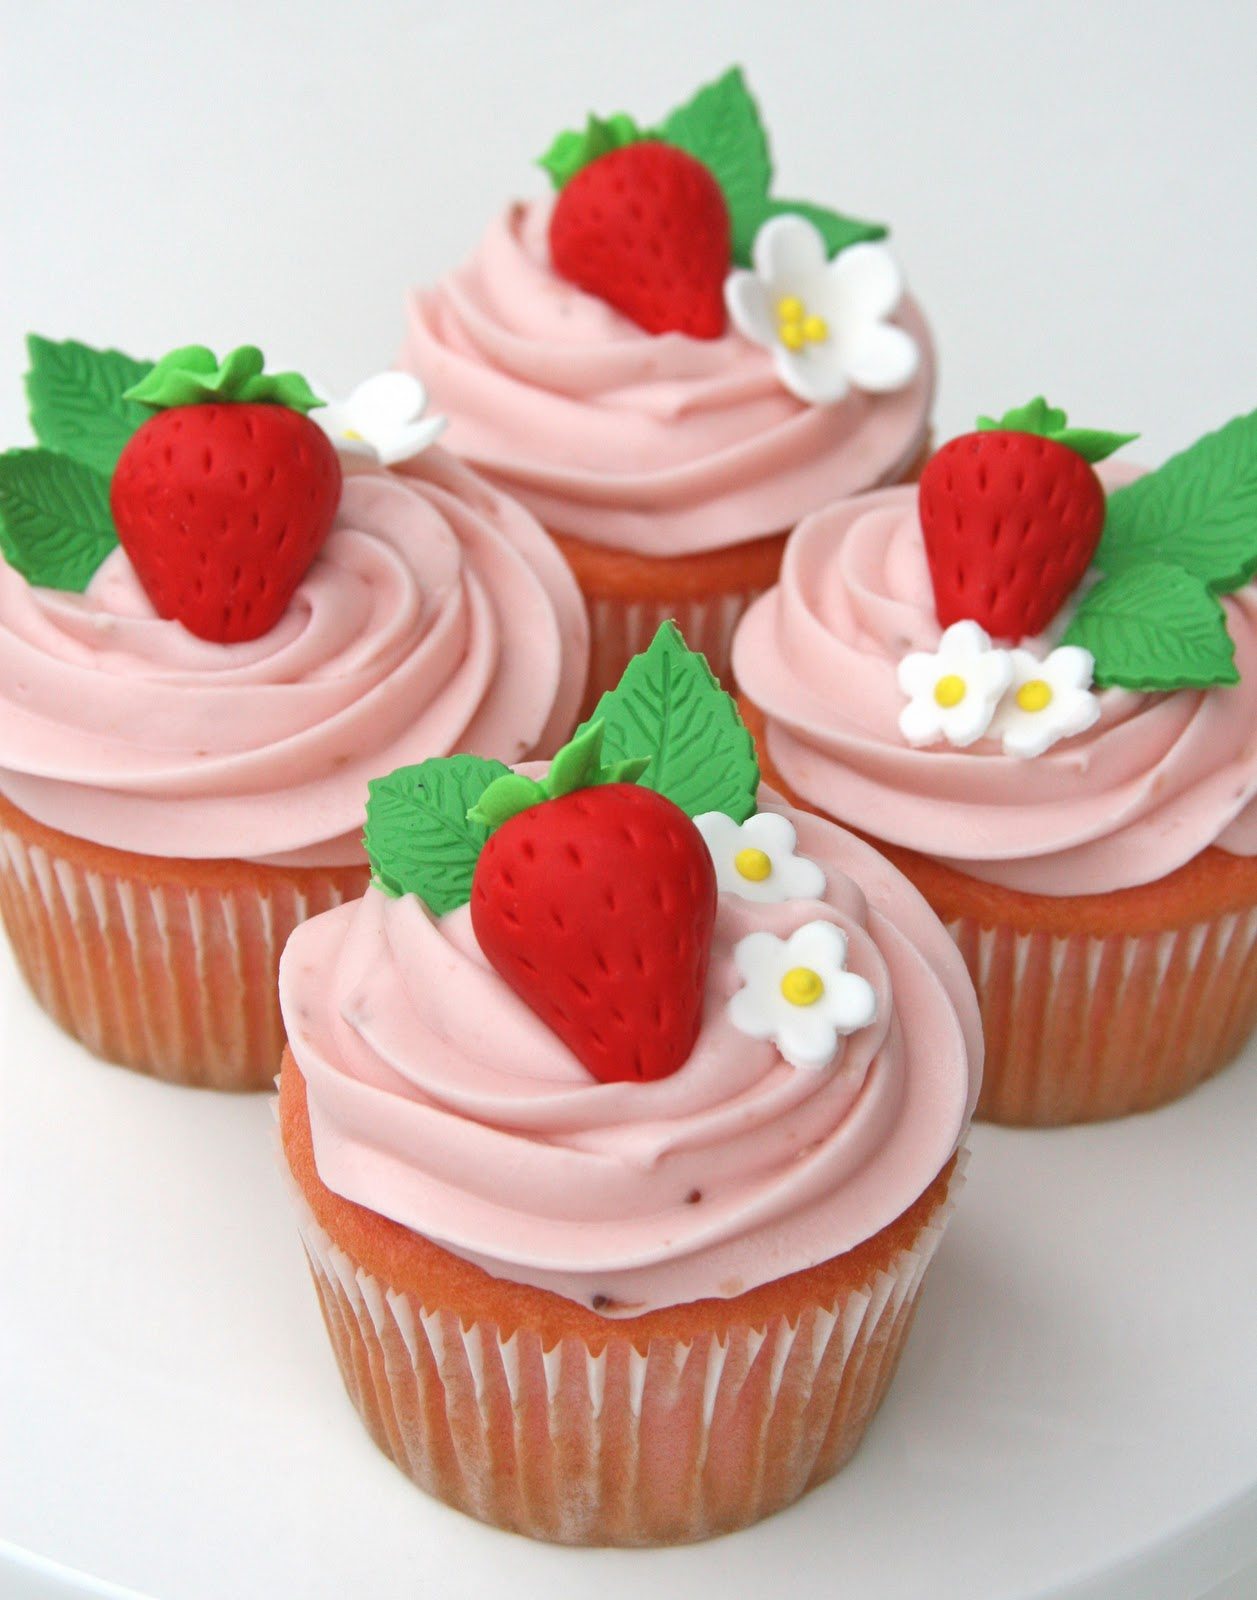 Strawberry Cupcakes With Real Strawberries